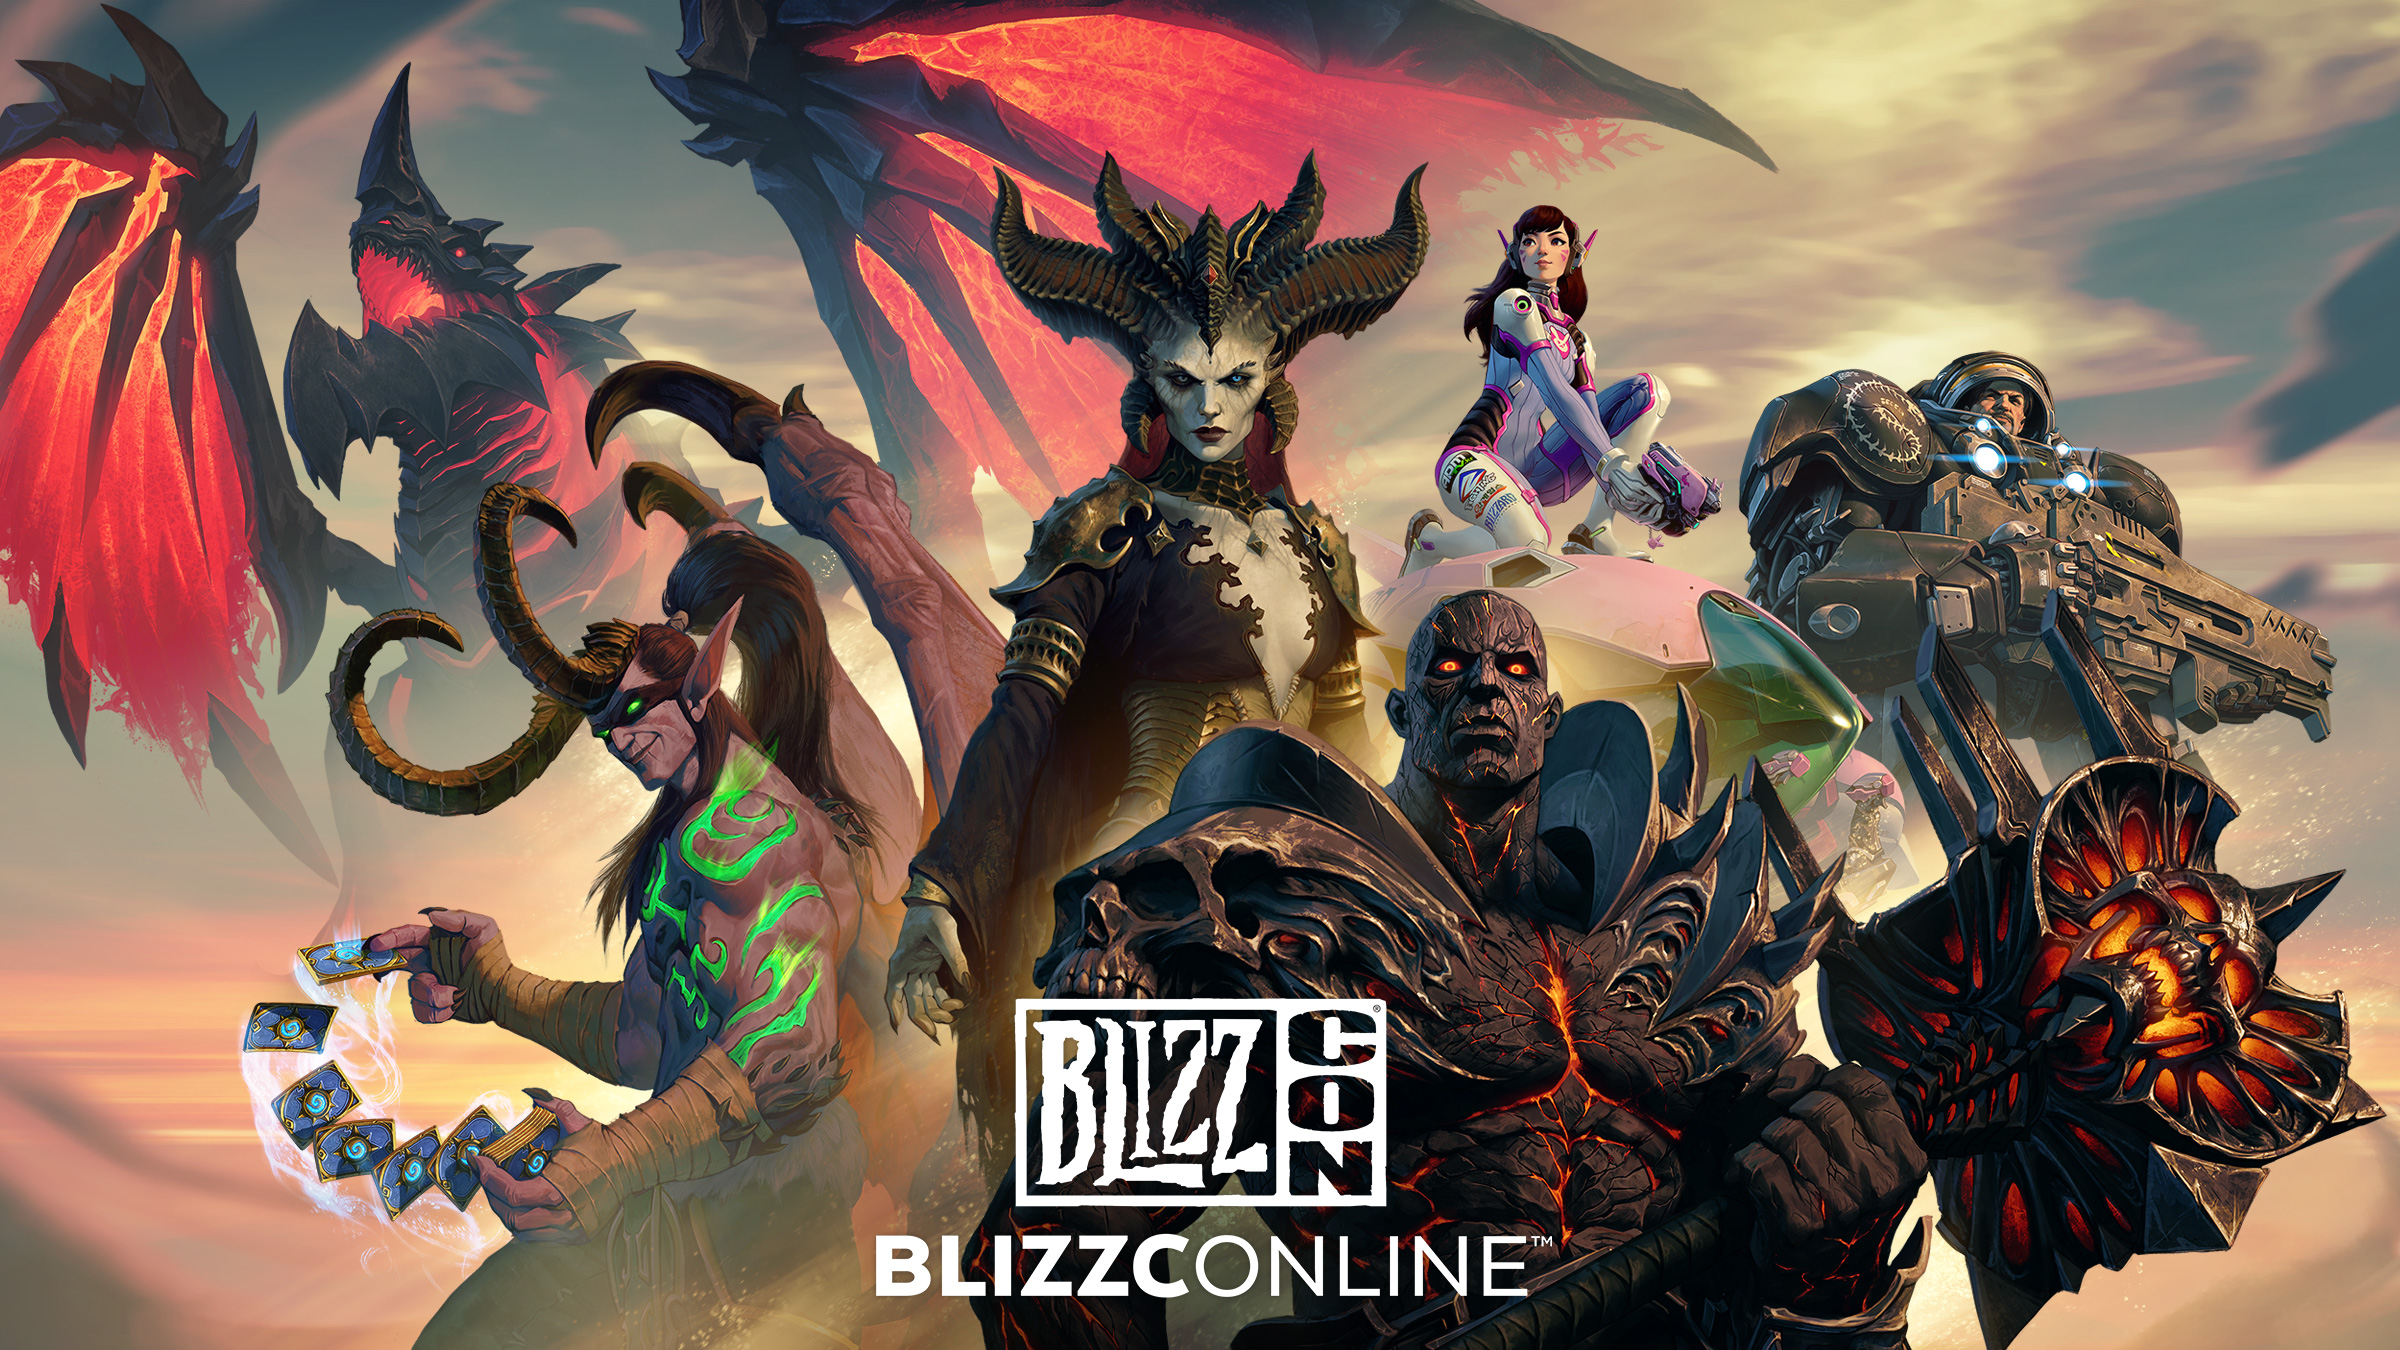 Where to Watch BlizzConline